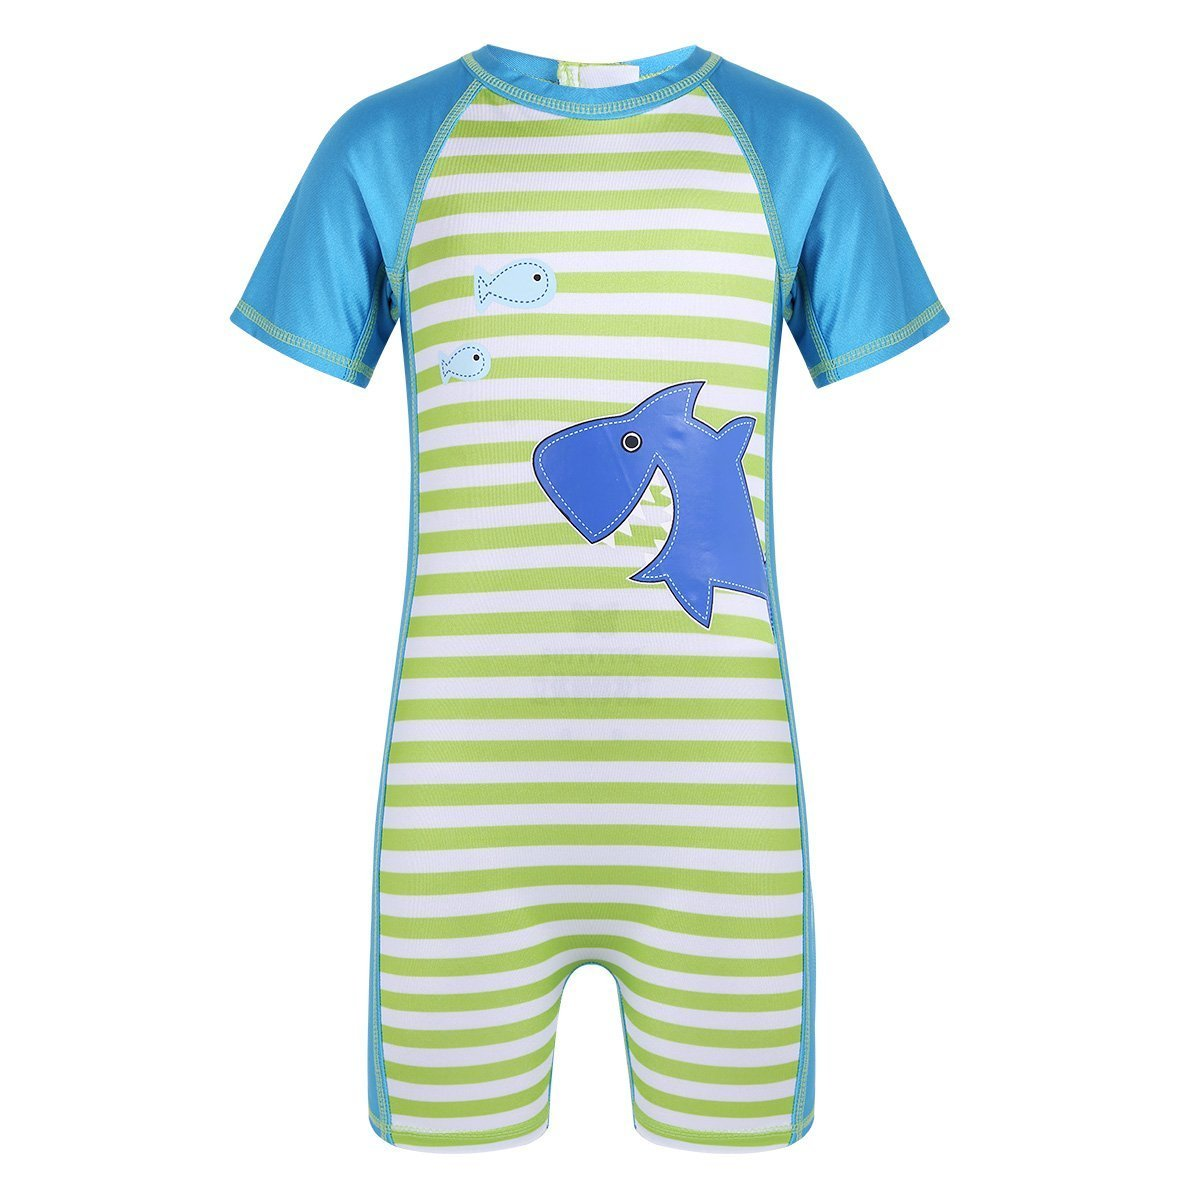 TiaoBug Baby Boys Girls One-Piece Zippered Striped Swimsuit Swimwear UPF 50+ Rashguard